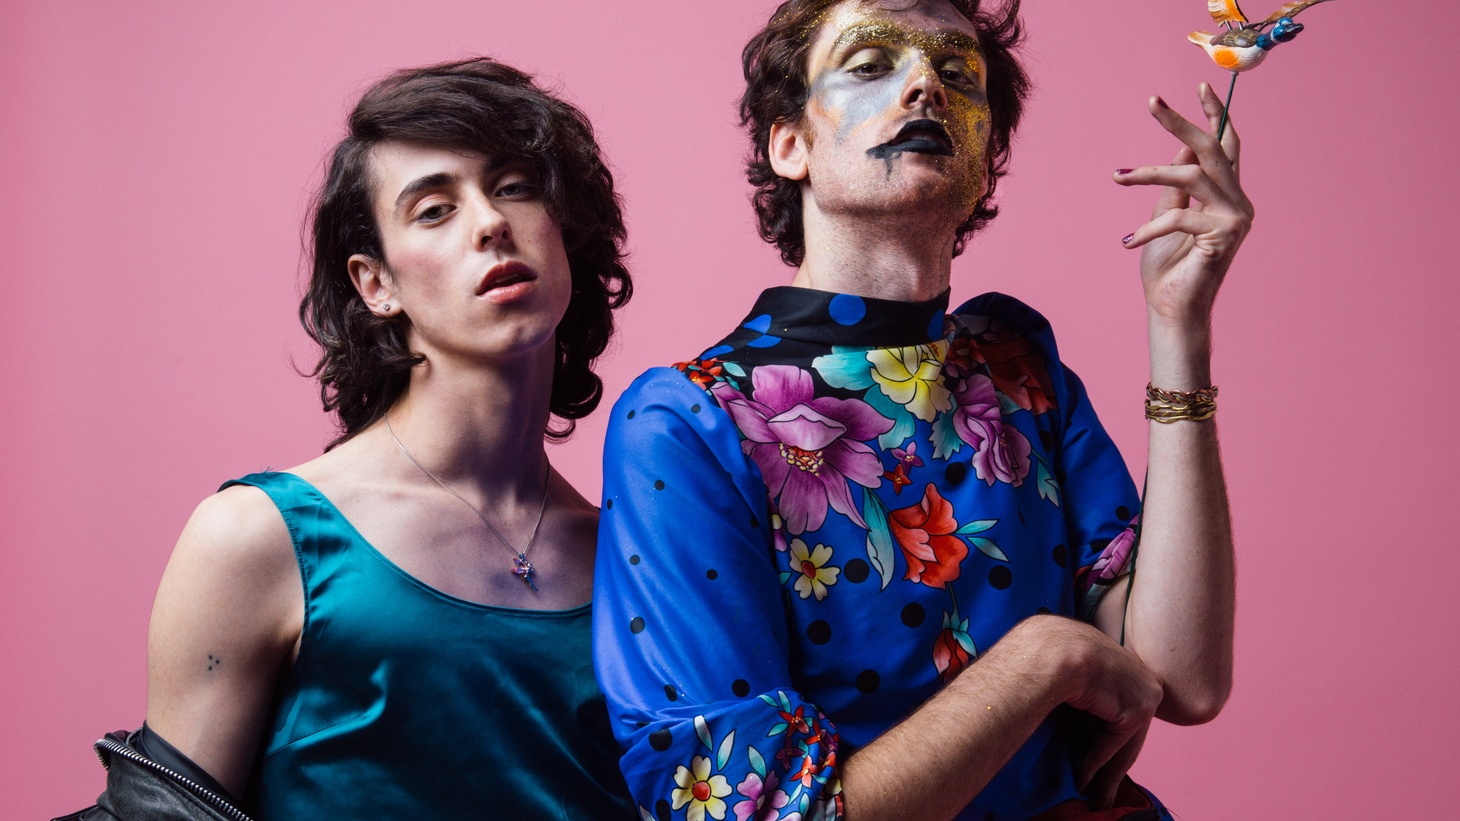 A couple of years ago, Liv Bruce and Ben Hopkins became PWR BTTM. The duo bonded in college over their mutual love of performance and drag artistry.